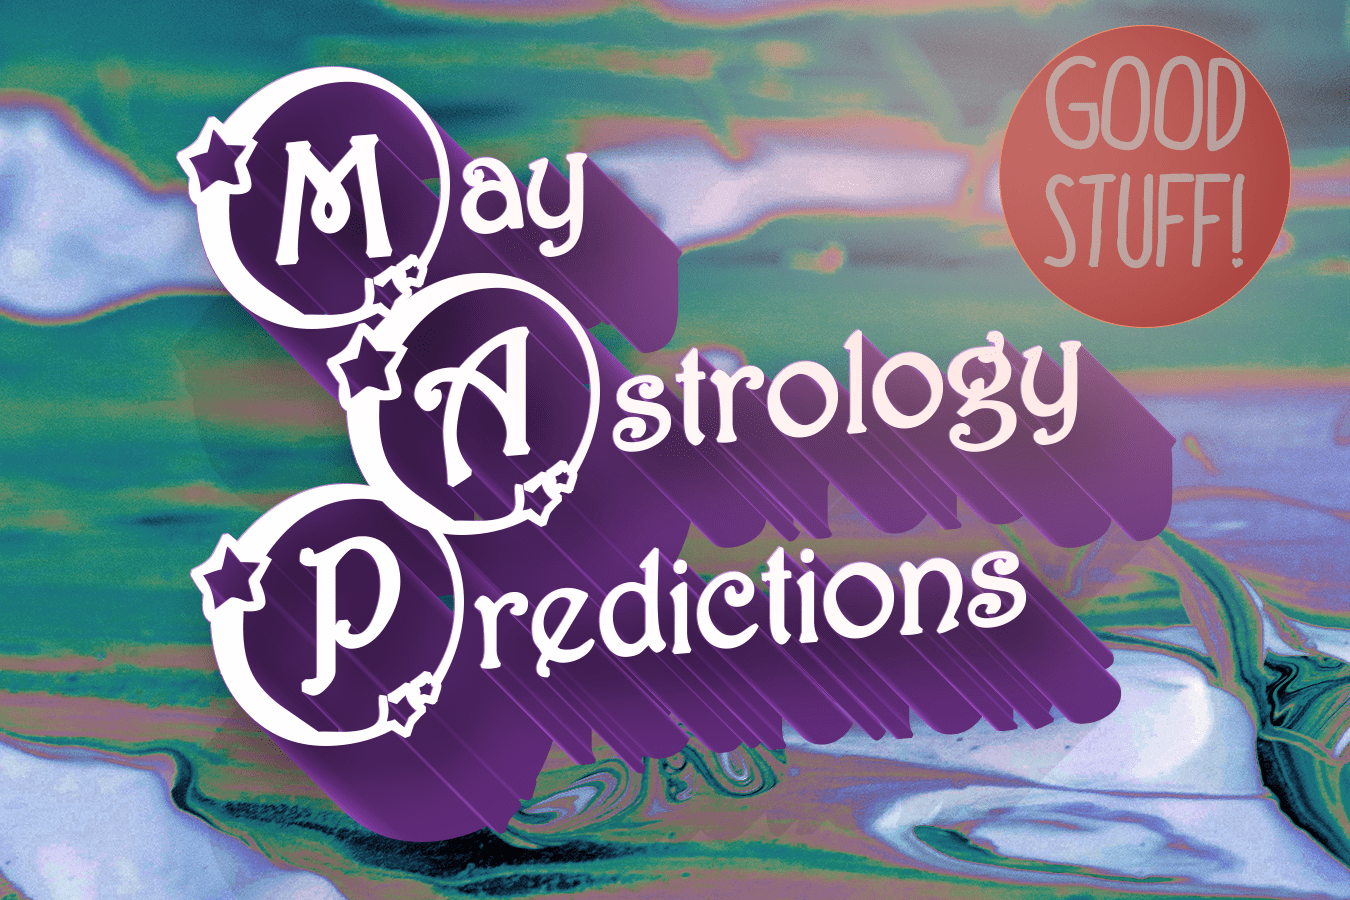 Weekly Horoscope, Astrology Prediction and Bitcoin Forecast for May 20-26